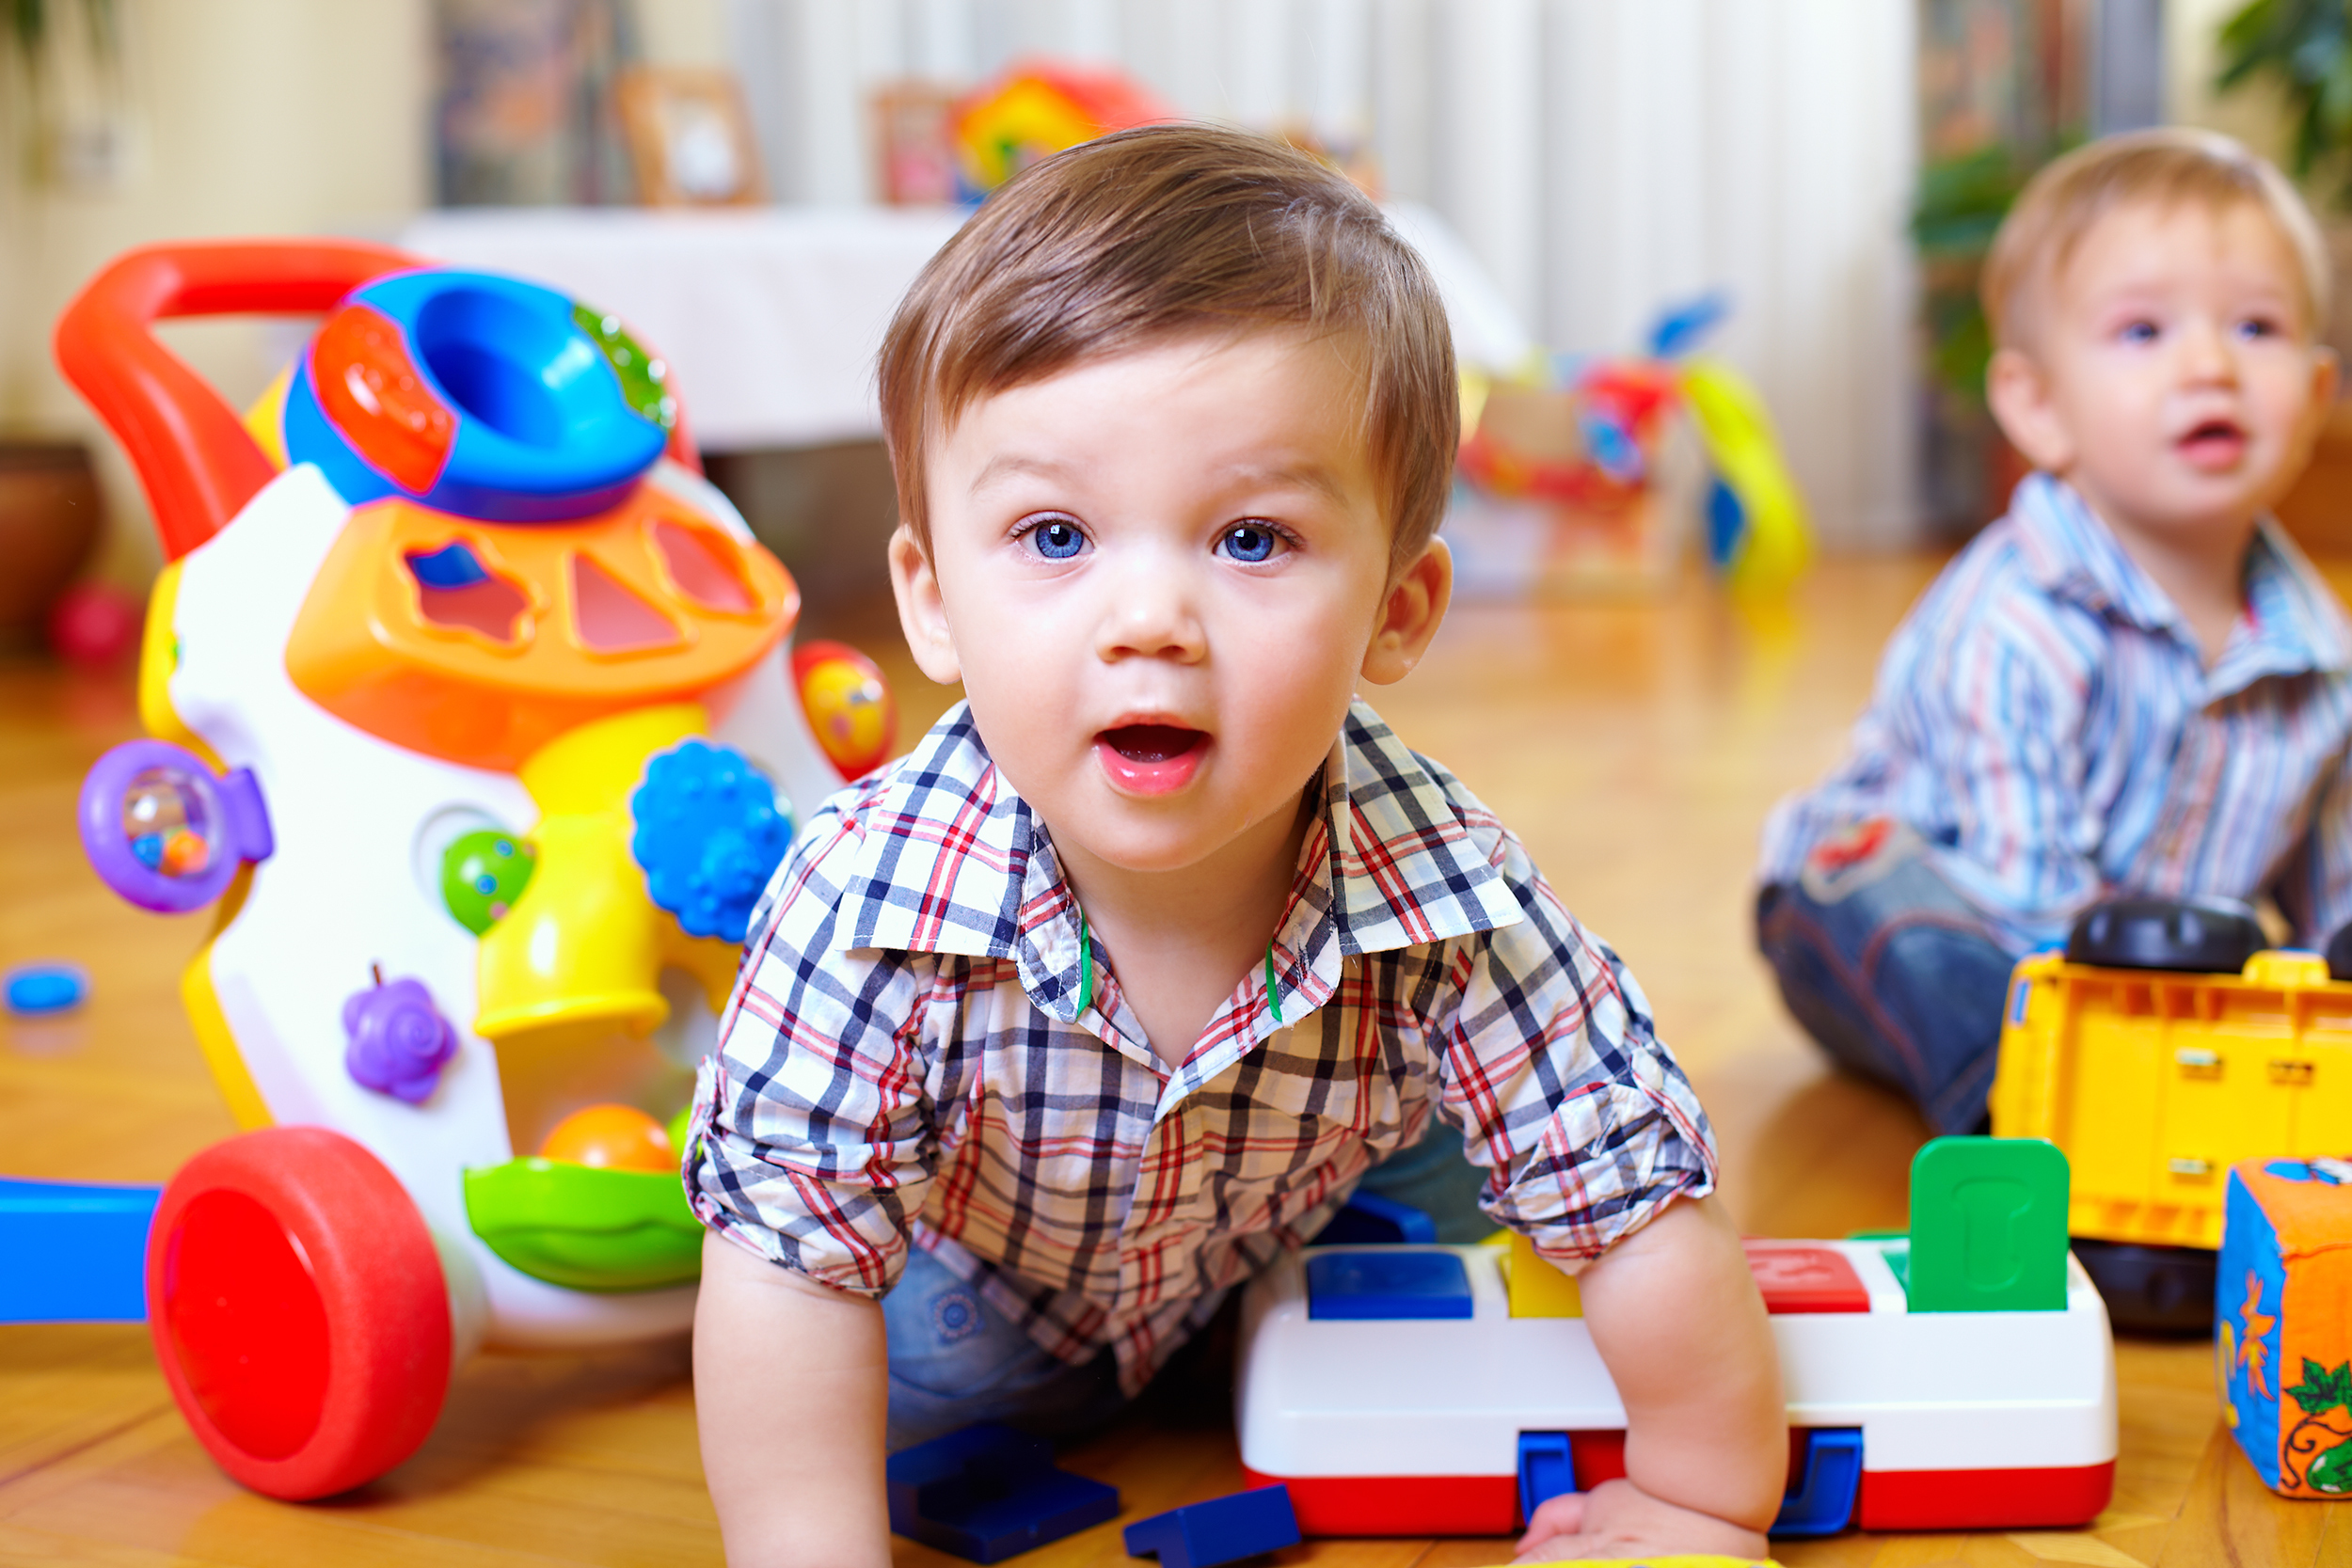 Many Infants and Toddlers Lack Access to Licensed Child Care